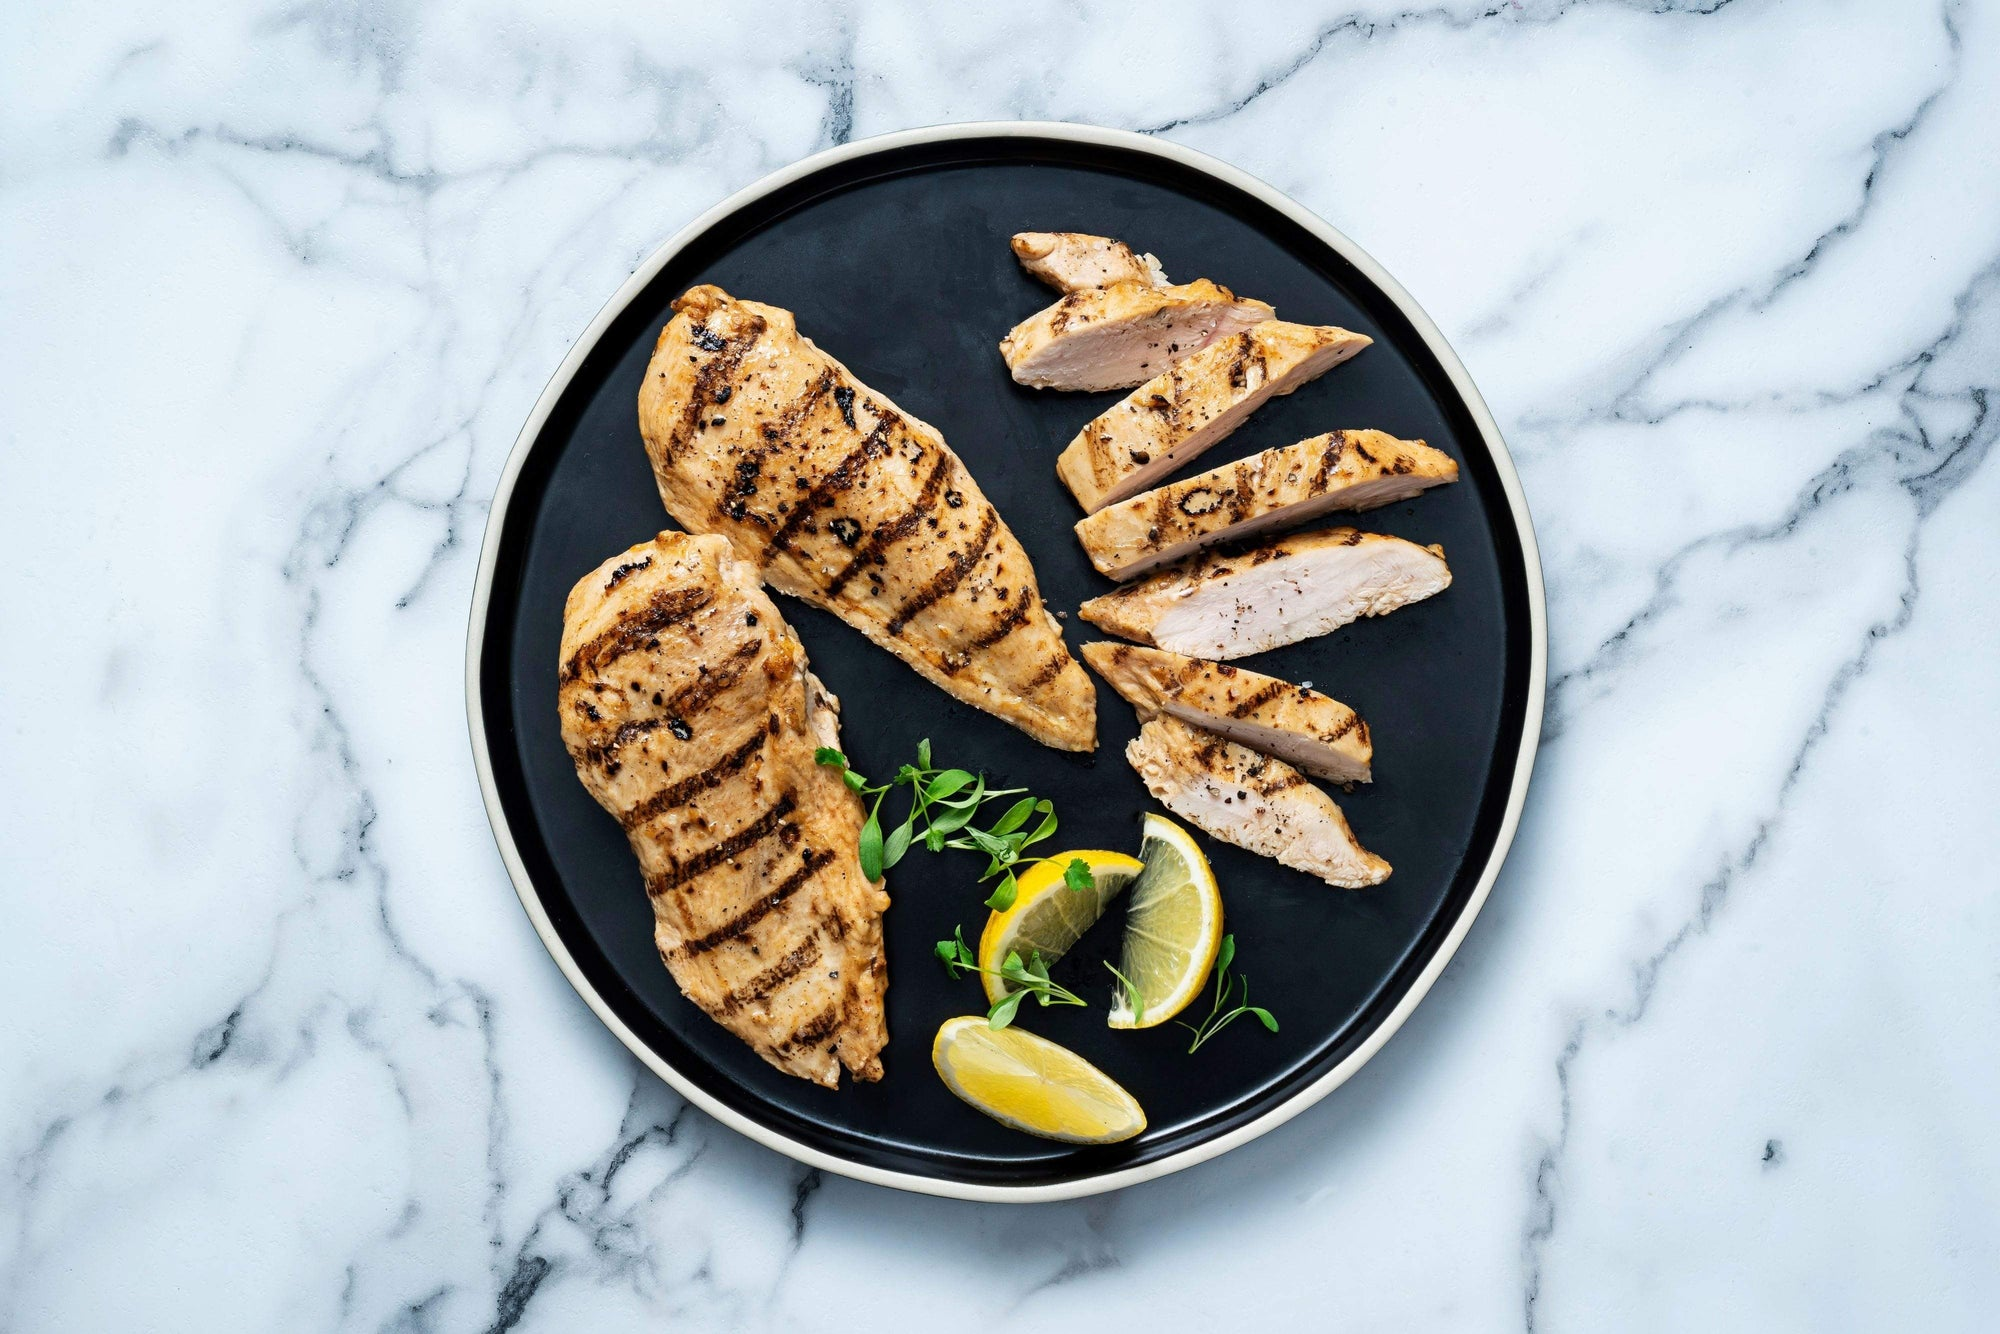 Seared Grilled Chicken Breast